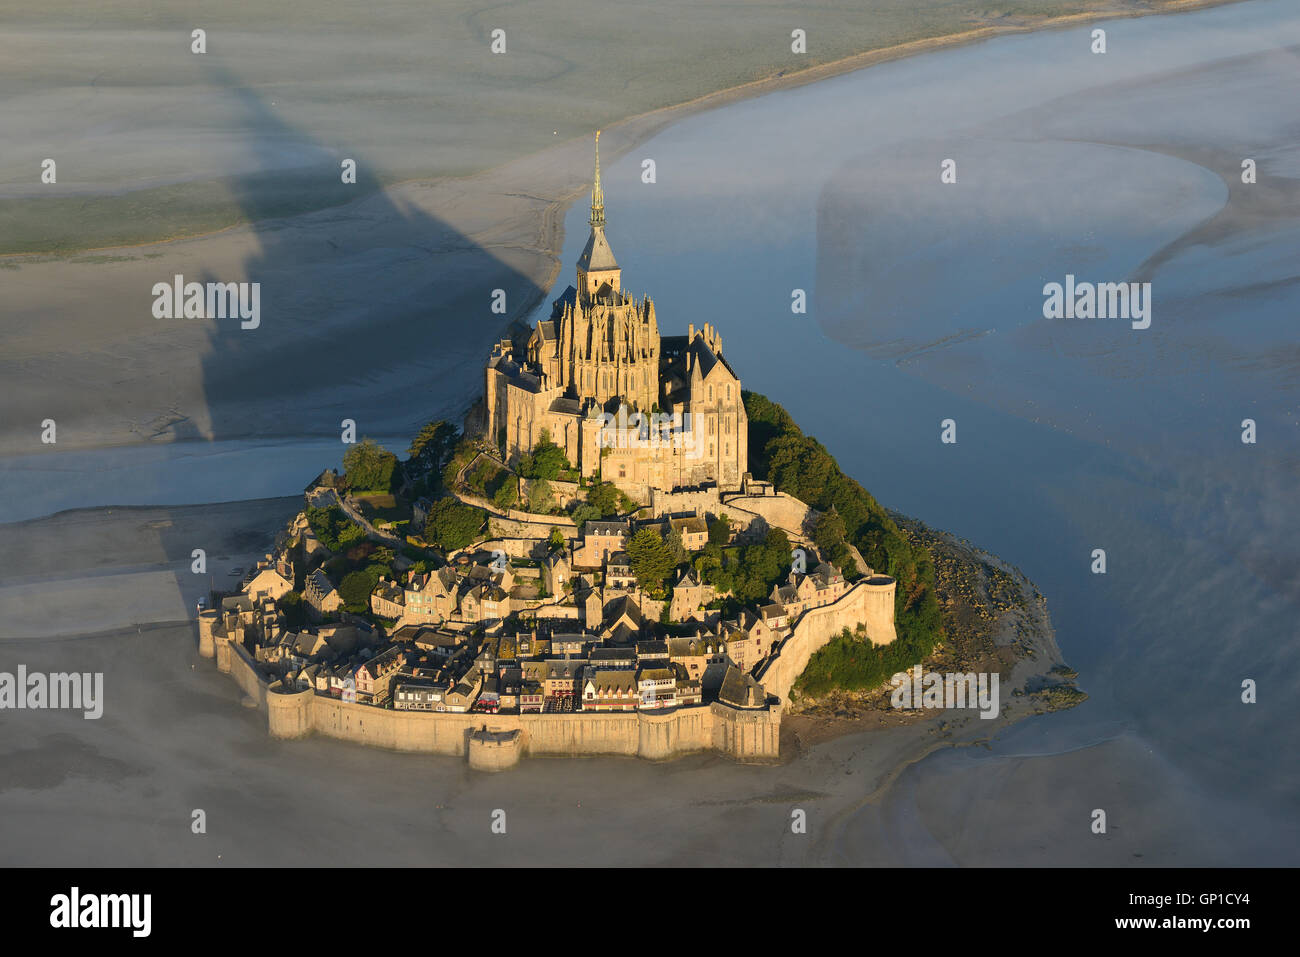 ABBEY ON A GRANITE OUTCROP (aerial view). Mont Saint-Michel, Manche, Normandy, France. Stock Photo